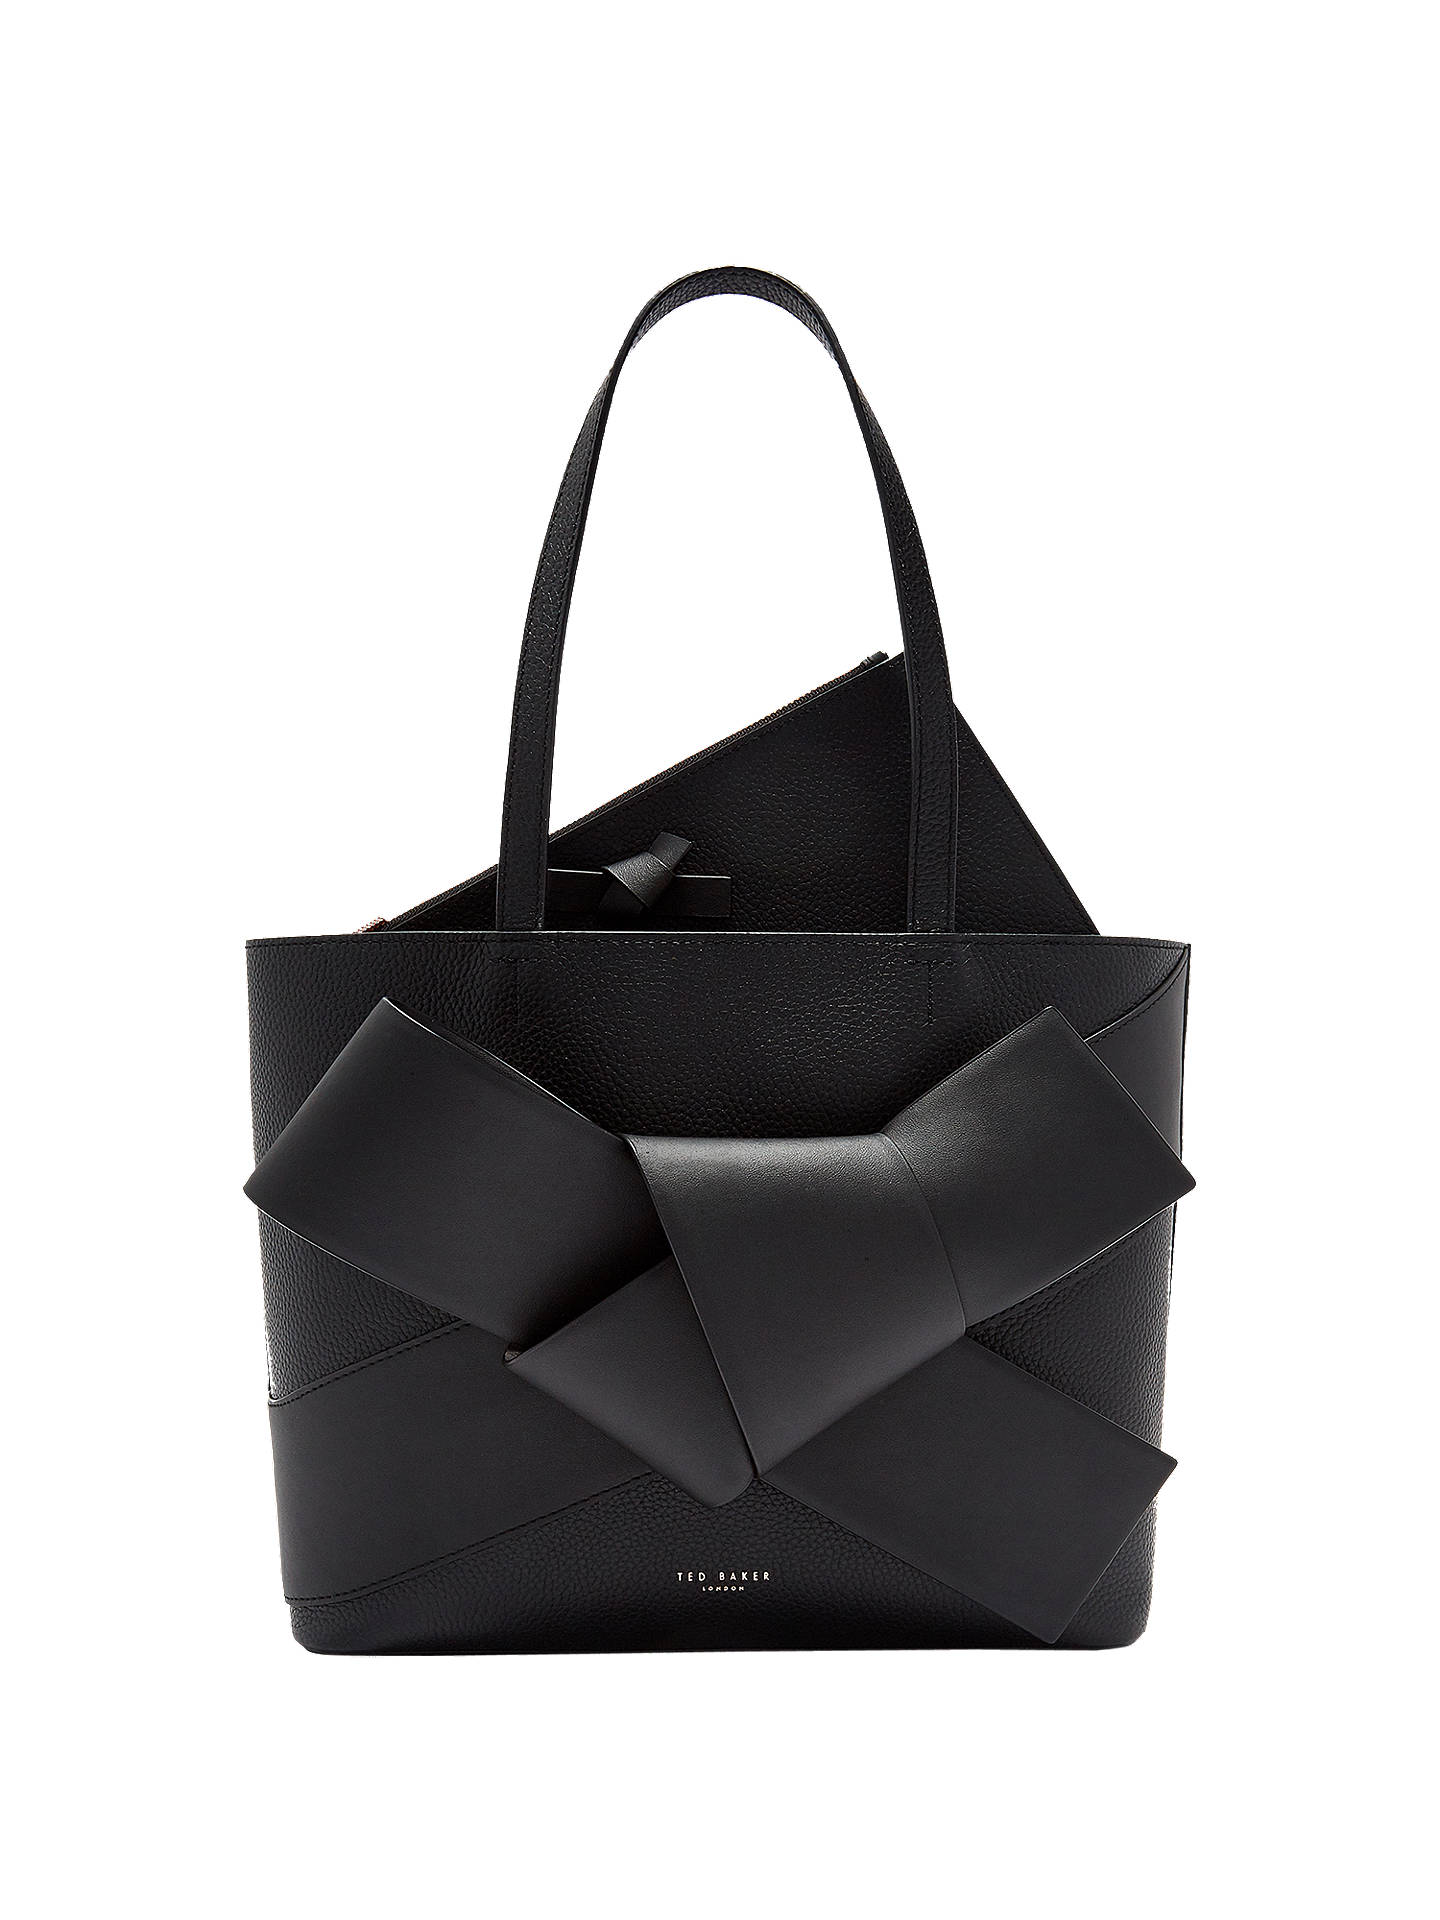 Ted Baker Alliie Leather Giant Bow Per Bag Black Online At Johnlewis